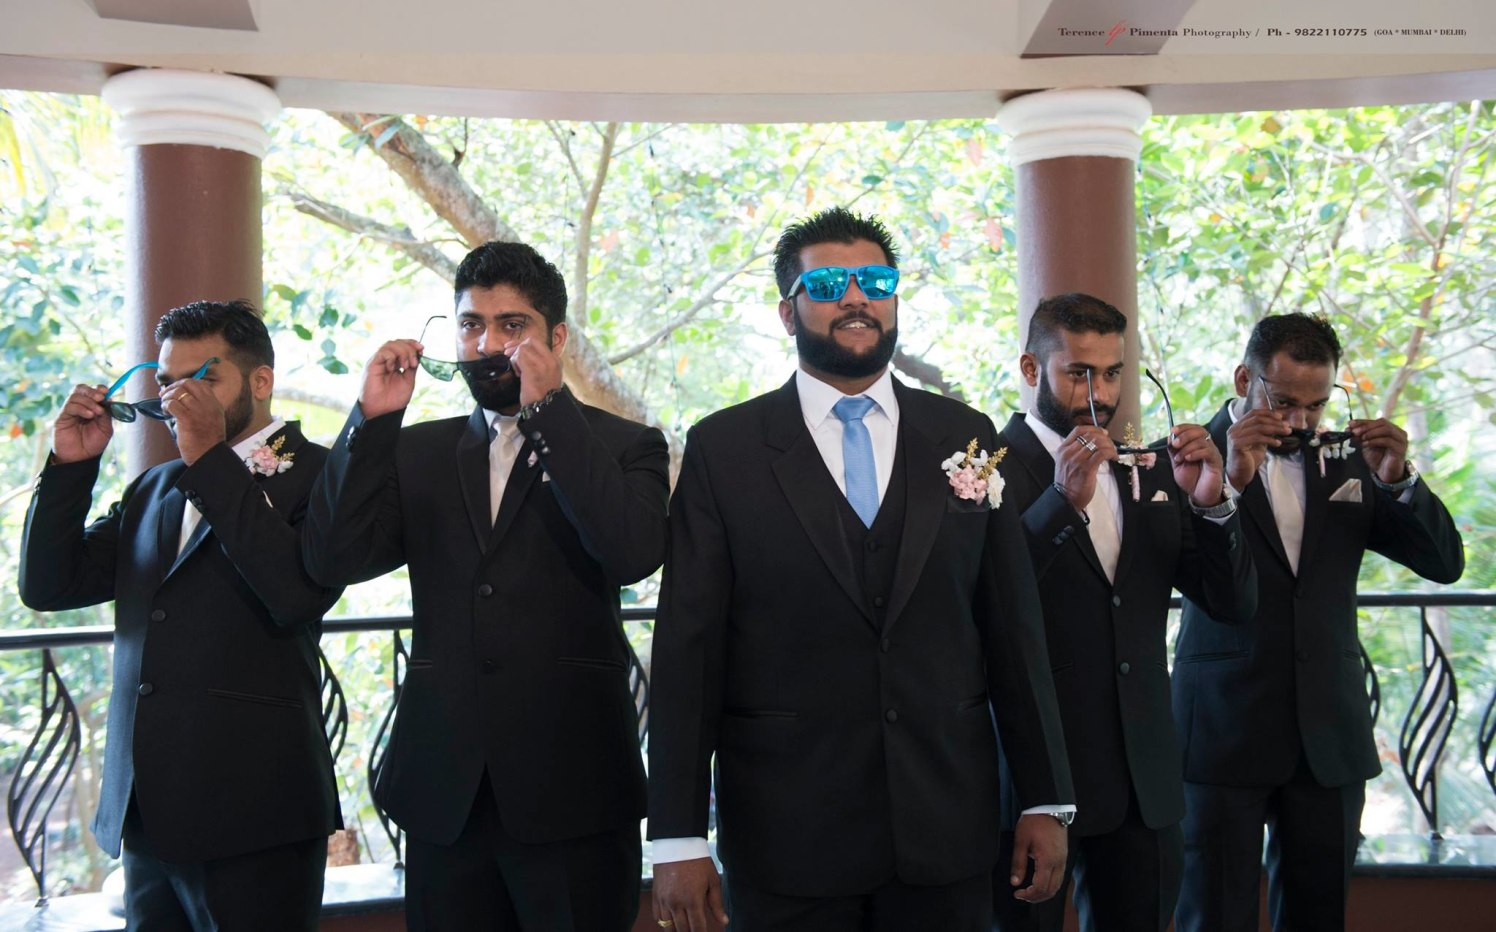 The flashy squad by Terence Pimenta Photography Wedding-photography | Weddings Photos & Ideas